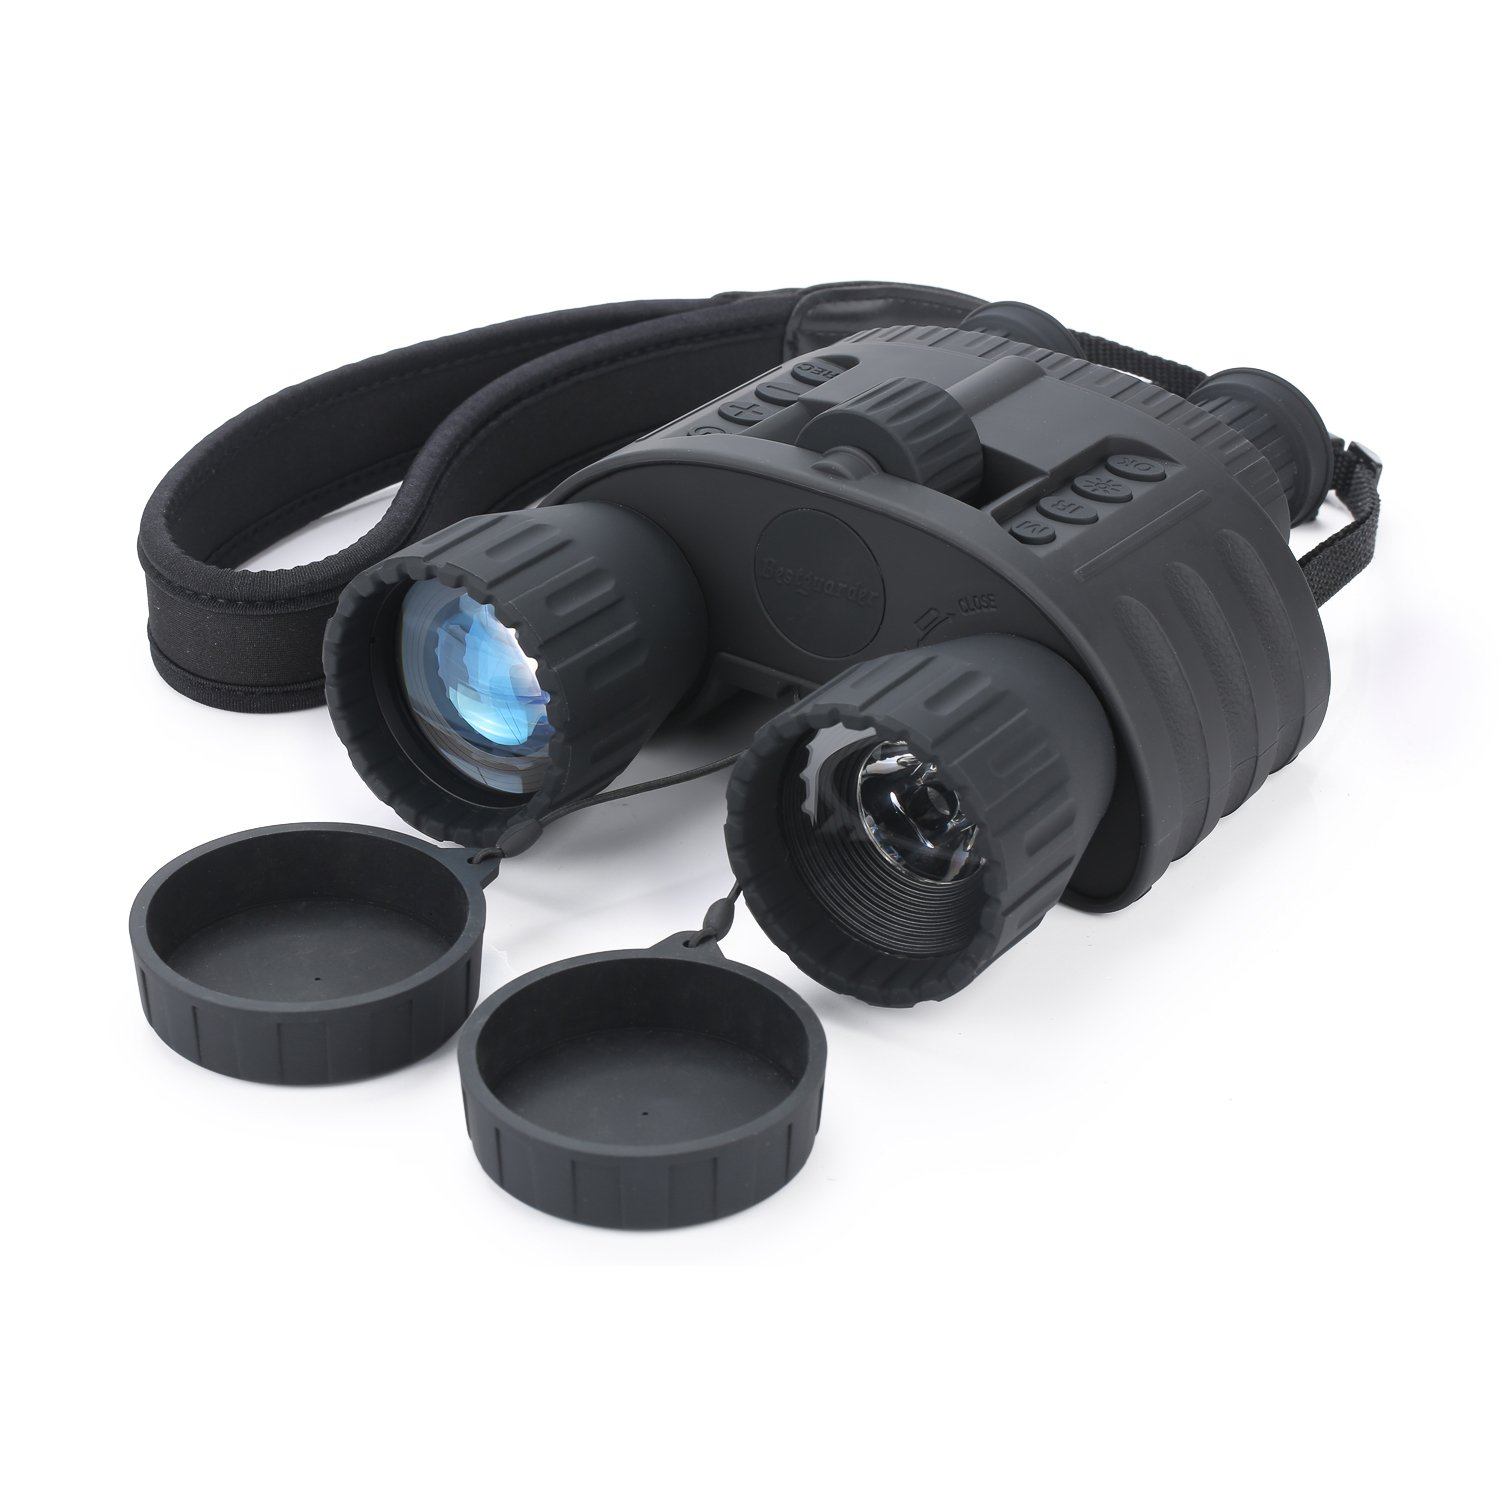 Bestguarder WG-80 4X50mm HD Digital Night Vision Binocular with 1.5 inch TFT LCD and Camera & Camcorder Function Takes 5mp Photo & 720p Video from 300m/980ft Distance by Bestguarder